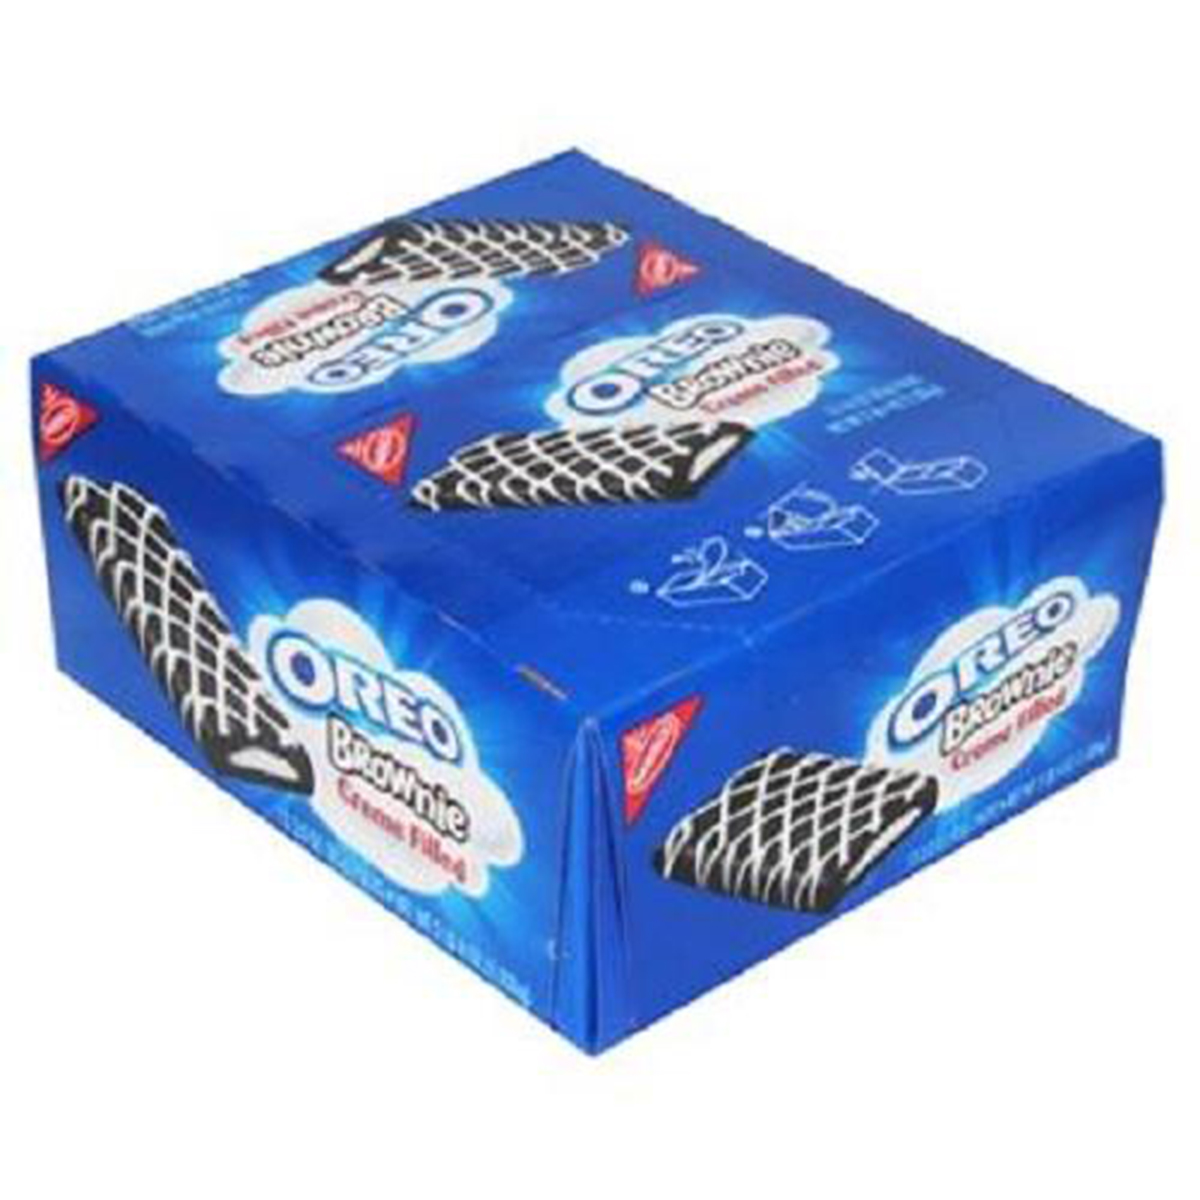 Nabisco Oreo Brownies Creme Filled 12 Ct of 3 Oz by